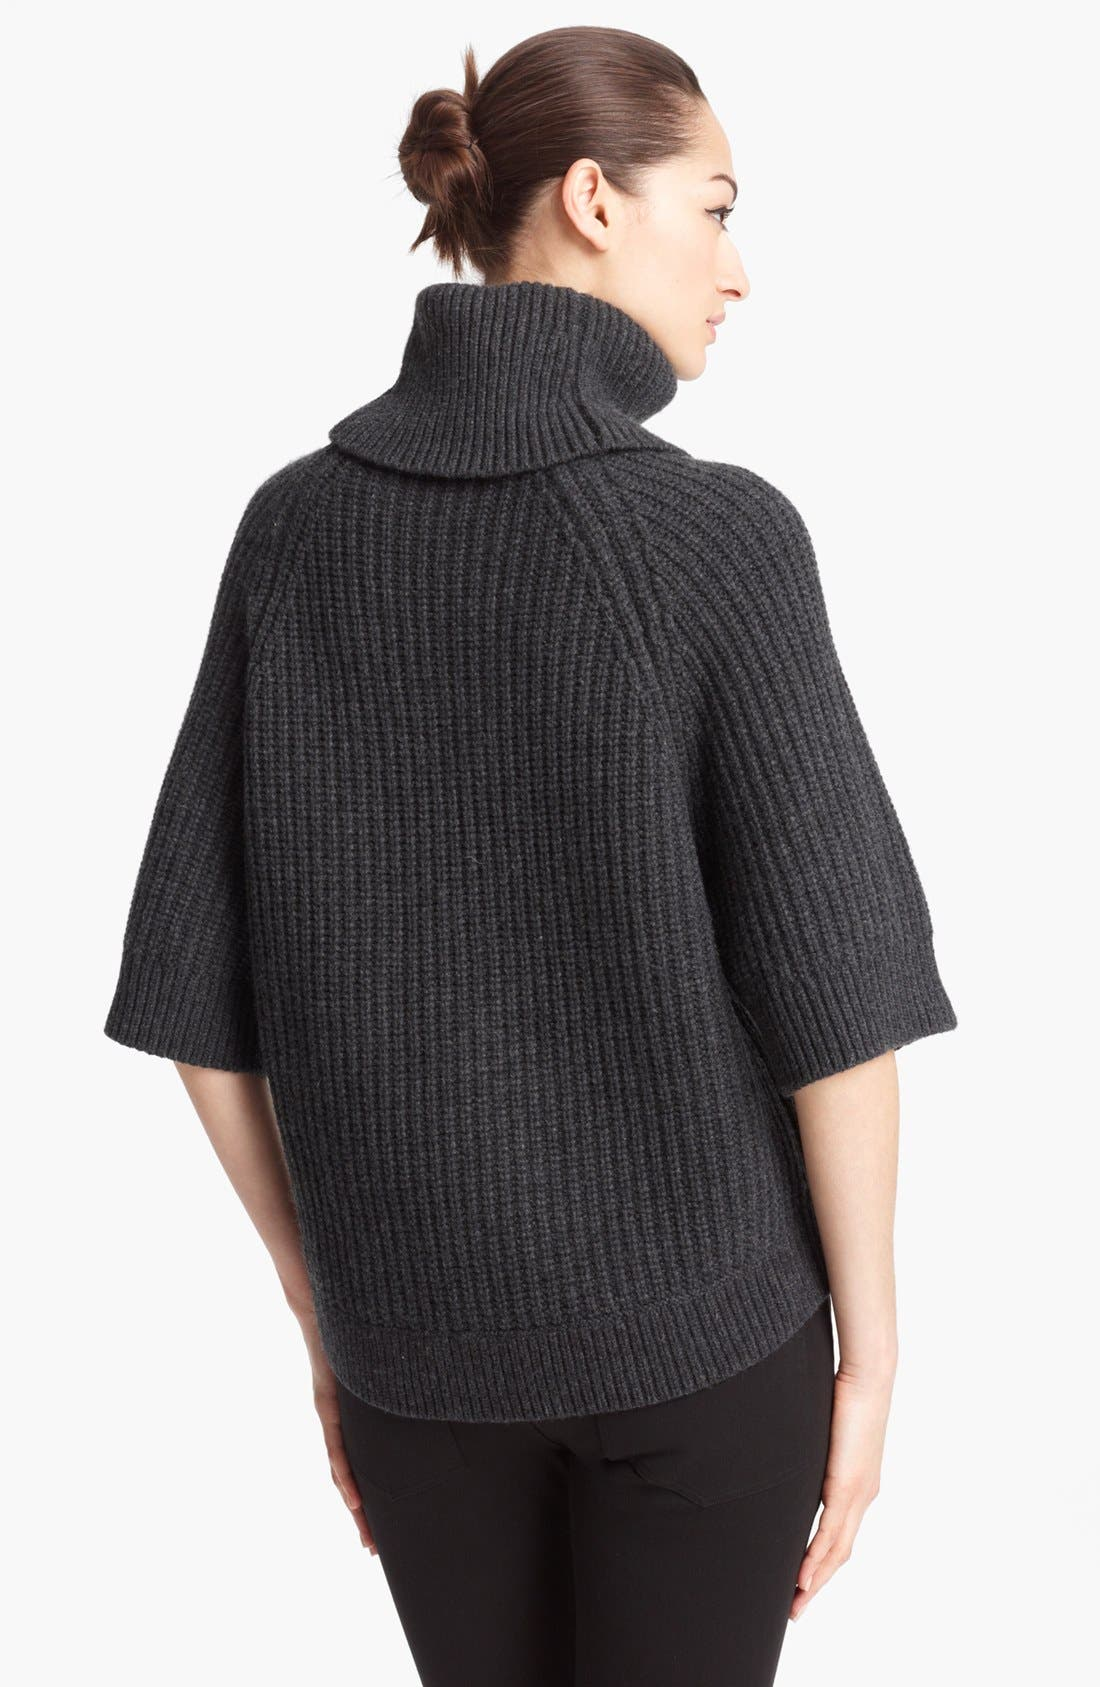 MICHAEL KORS,                             Turtleneck Sweater,                             Alternate thumbnail 2, color,                             020